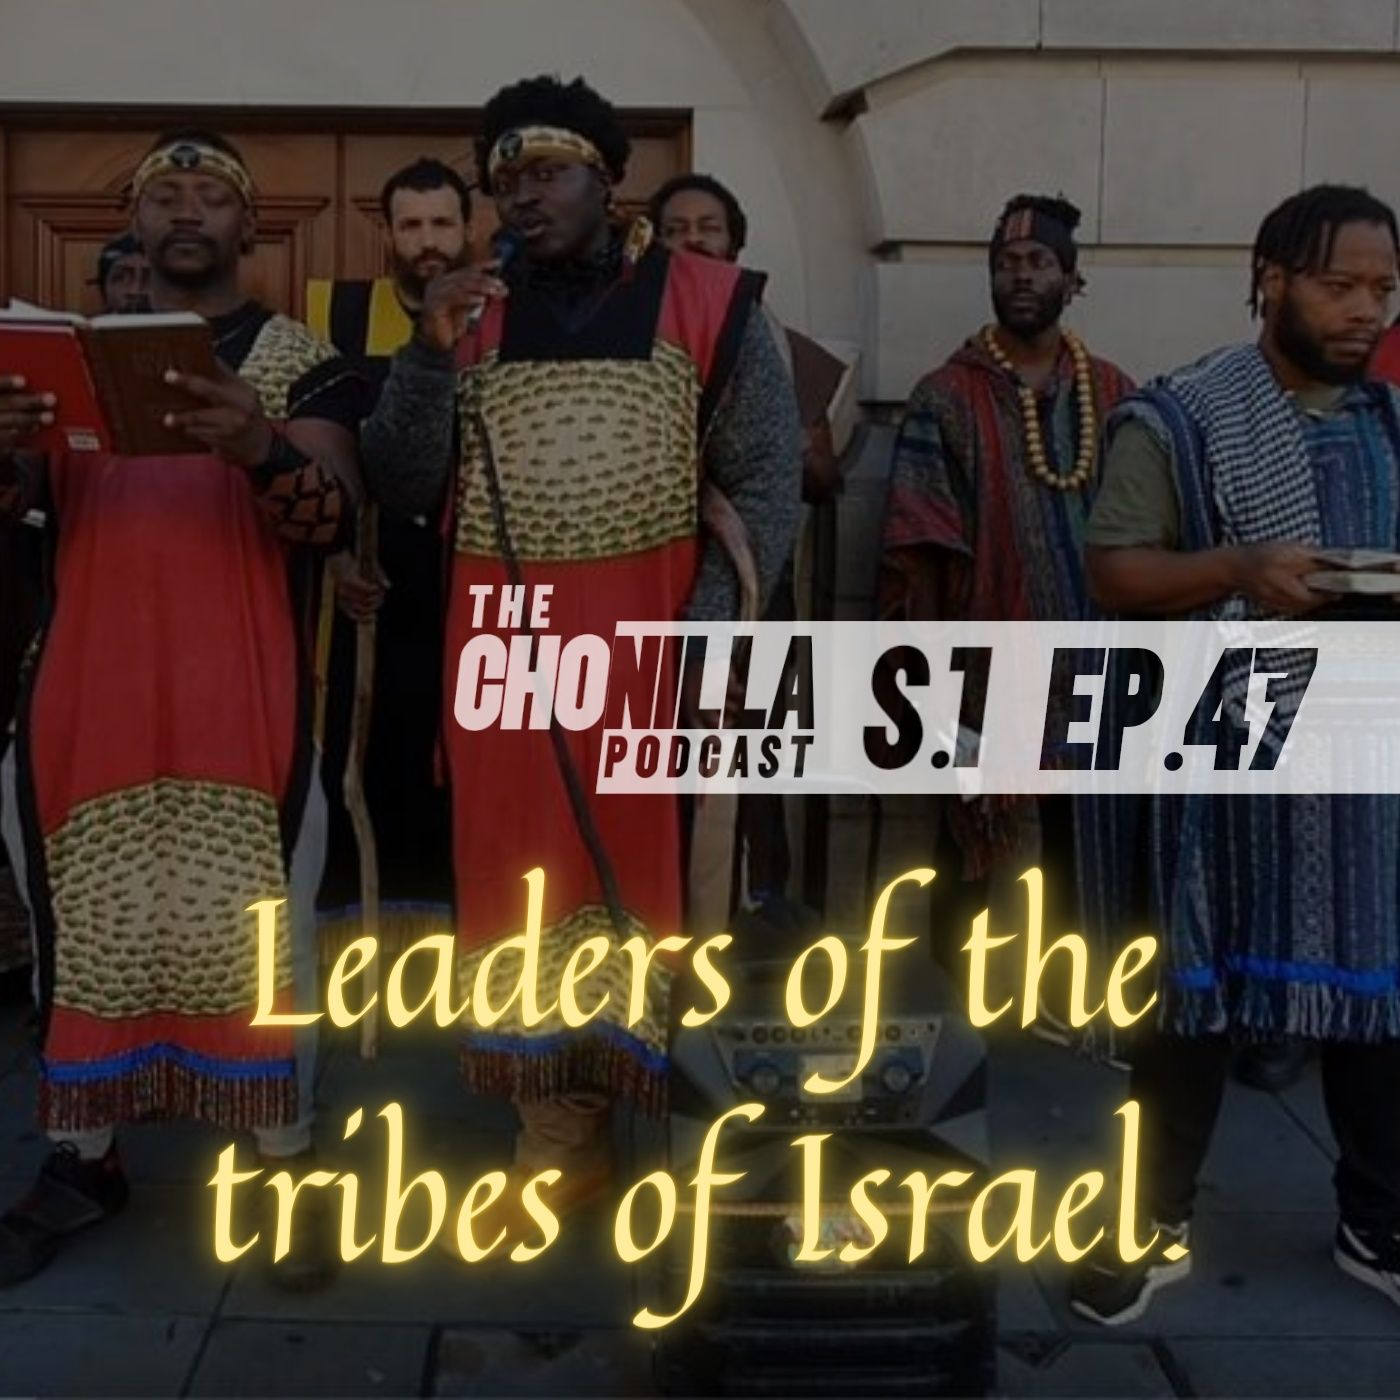 Leaders of the tribes of Israel